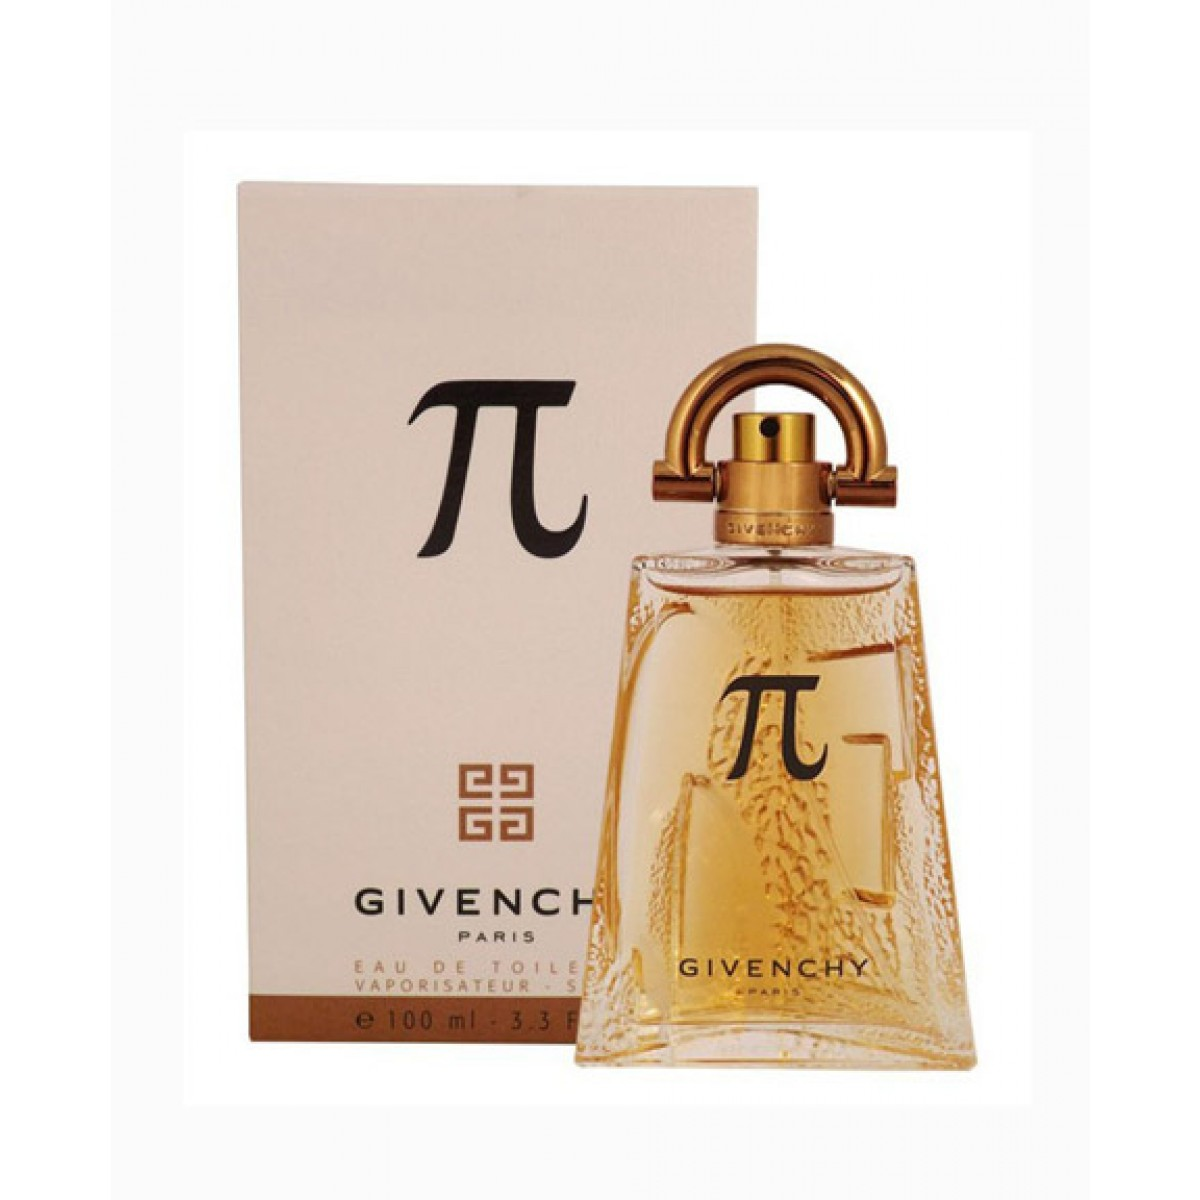 2617d74b18a Givenchy Pi Eau De Toilette For Men 100ml Price in Pakistan